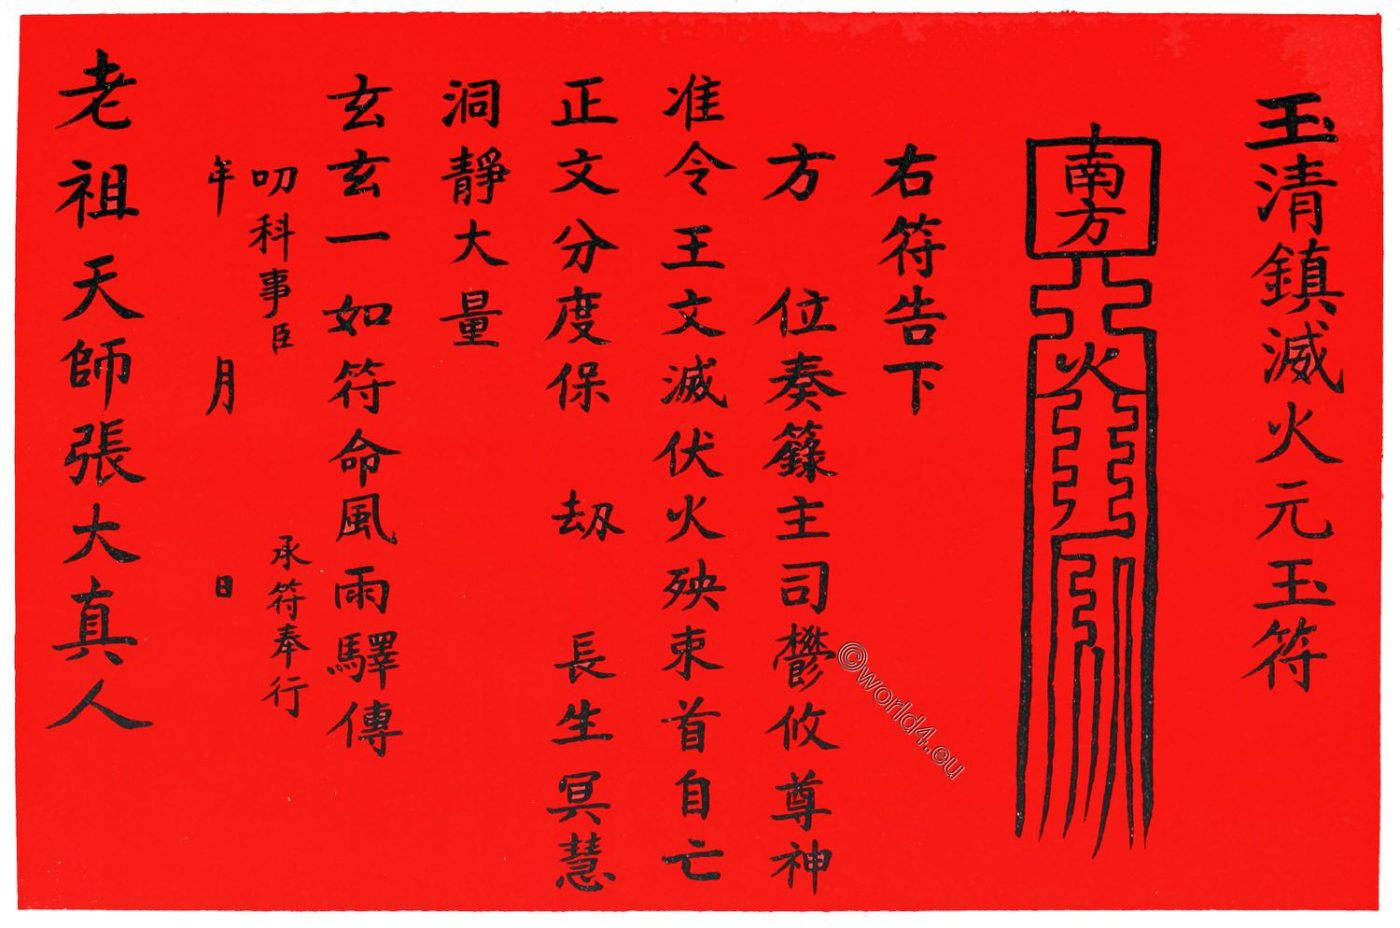 Red, charm, Taoist, protective, formula, house fires, ancient, China, Chinese, superstitions